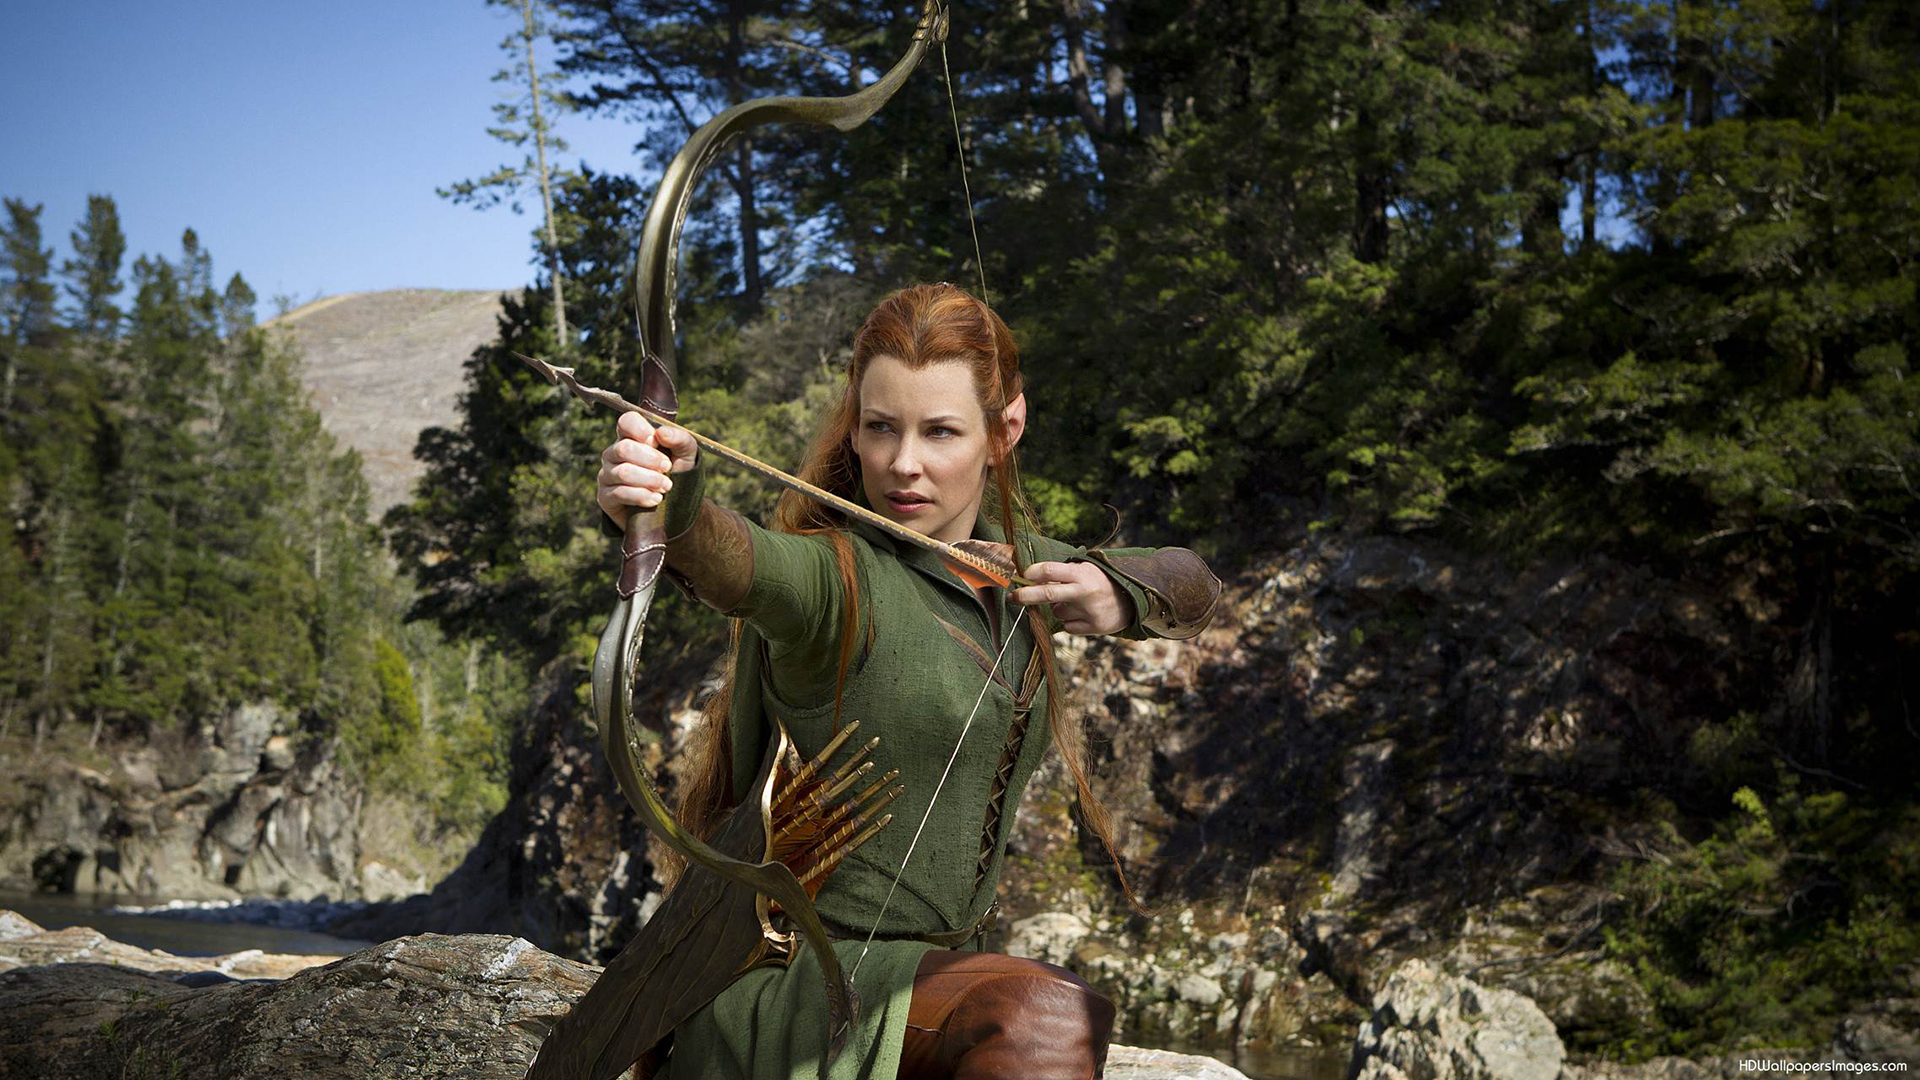 of the Rings The Hobbit Elf Bow Arrow Evangeline Lilly HD Wallpaper 639